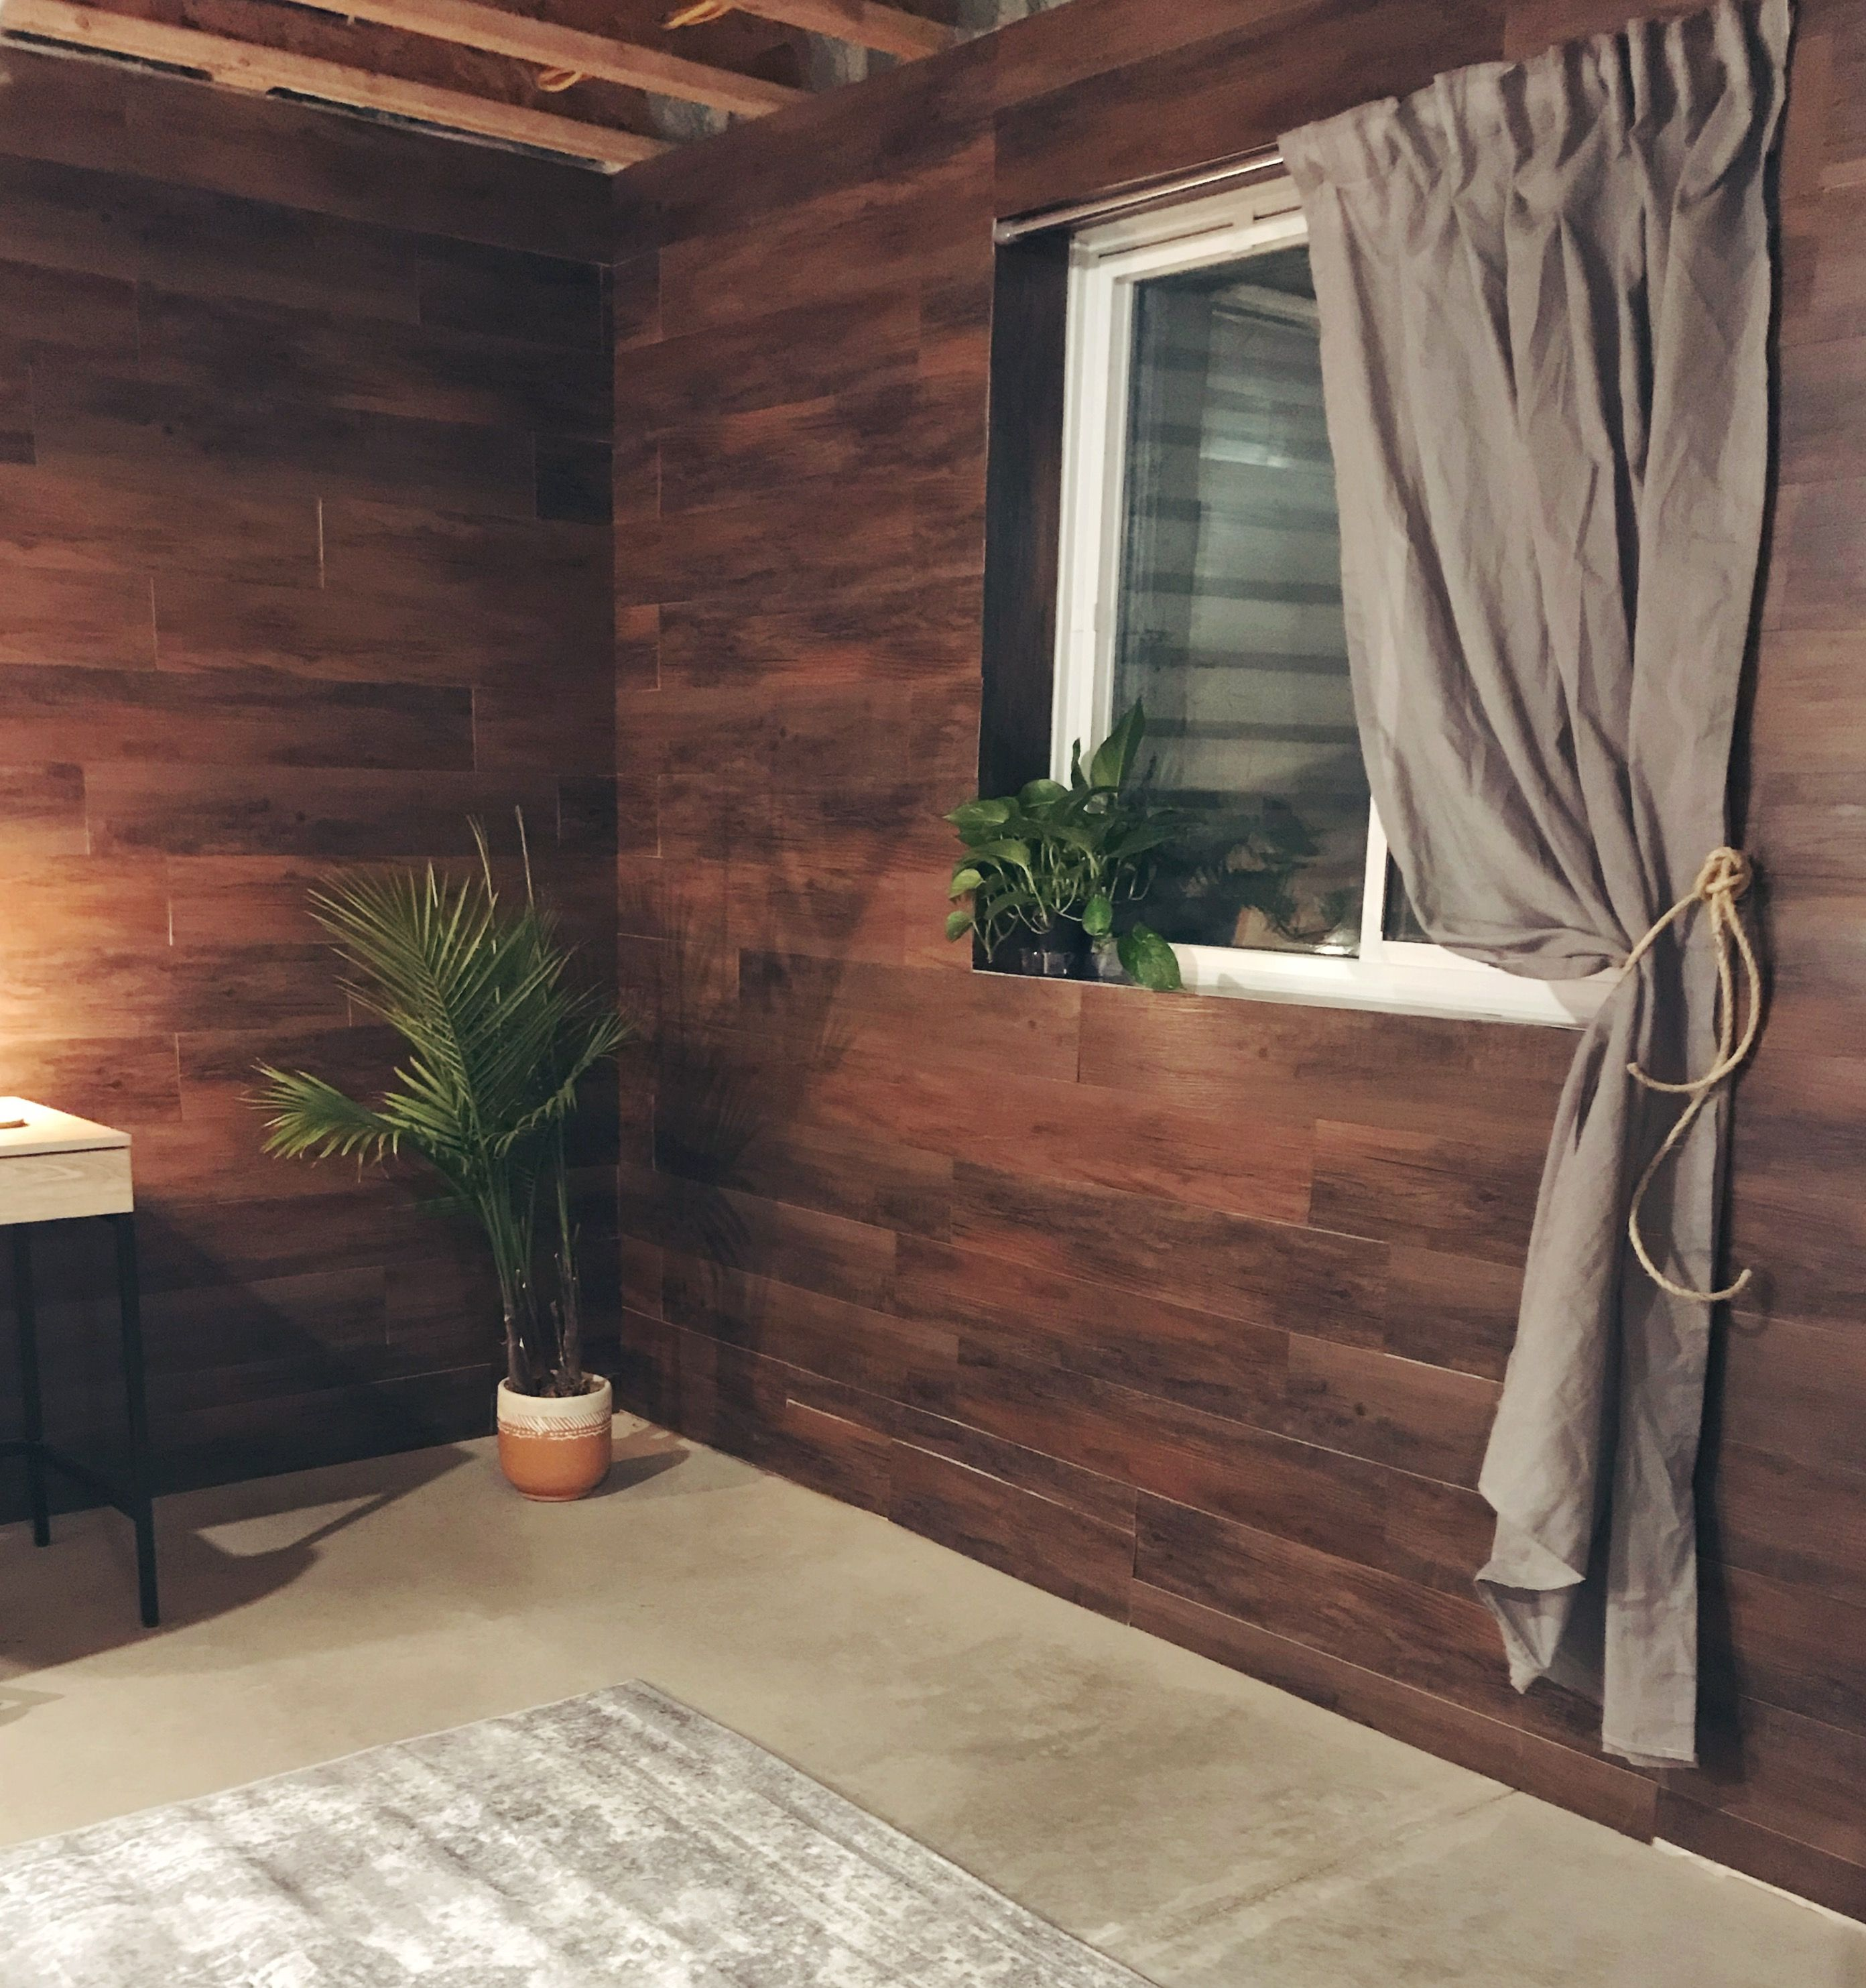 DIY Basement Wall, Easy Wall Cover, Peel And Stick Floor Tile On Walls,